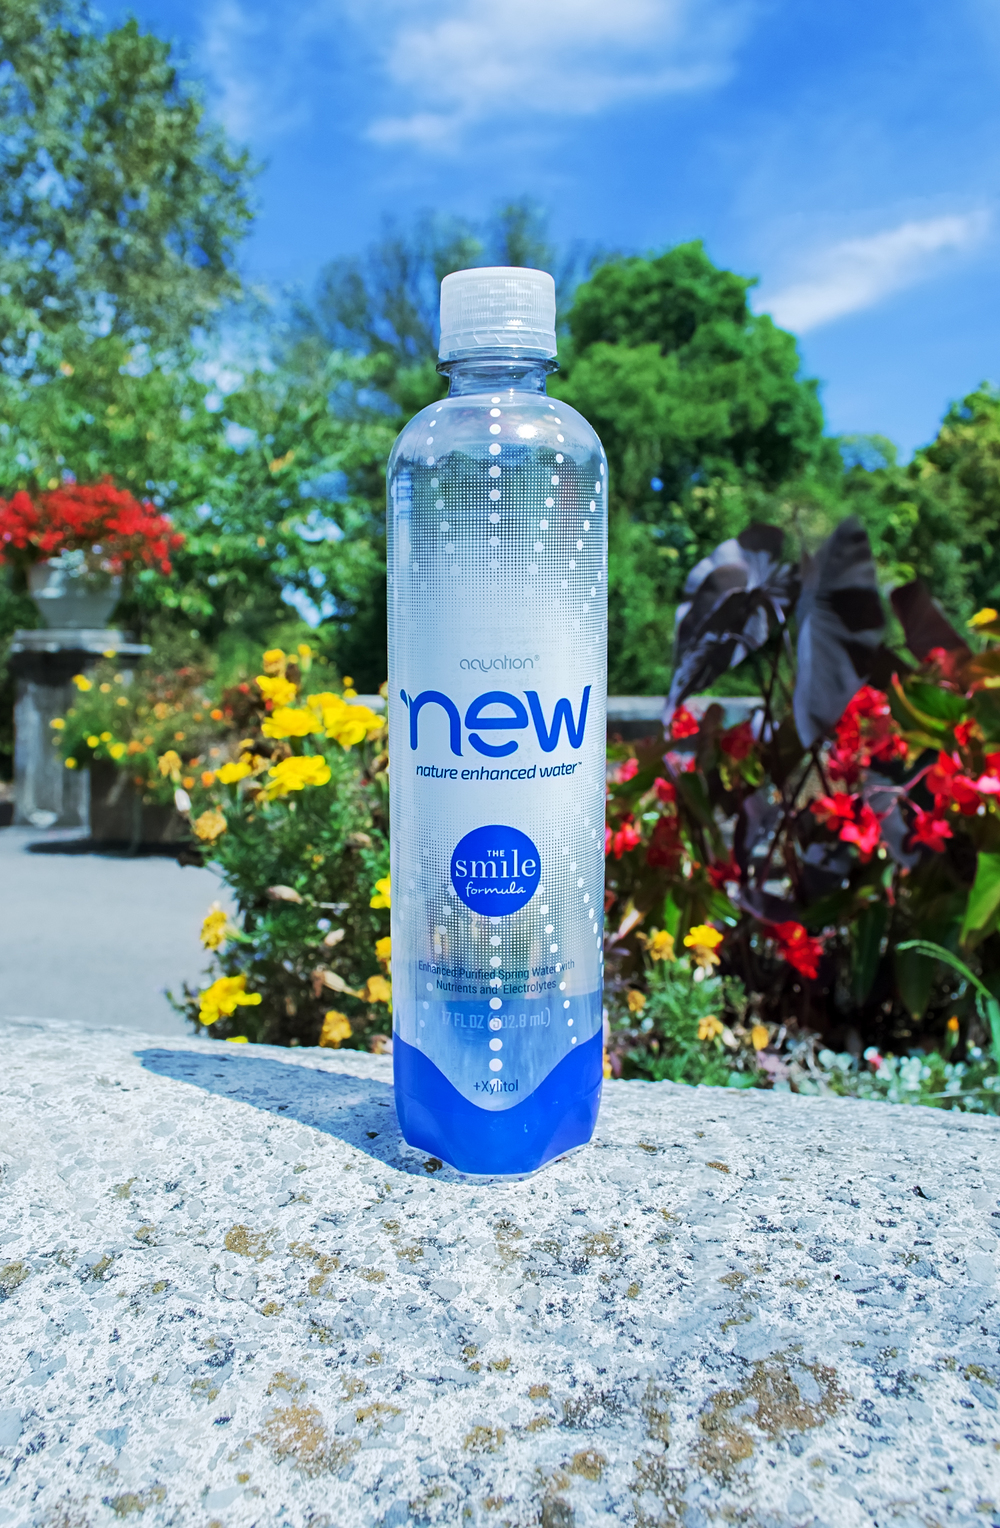 new-blue-bottle.jpg